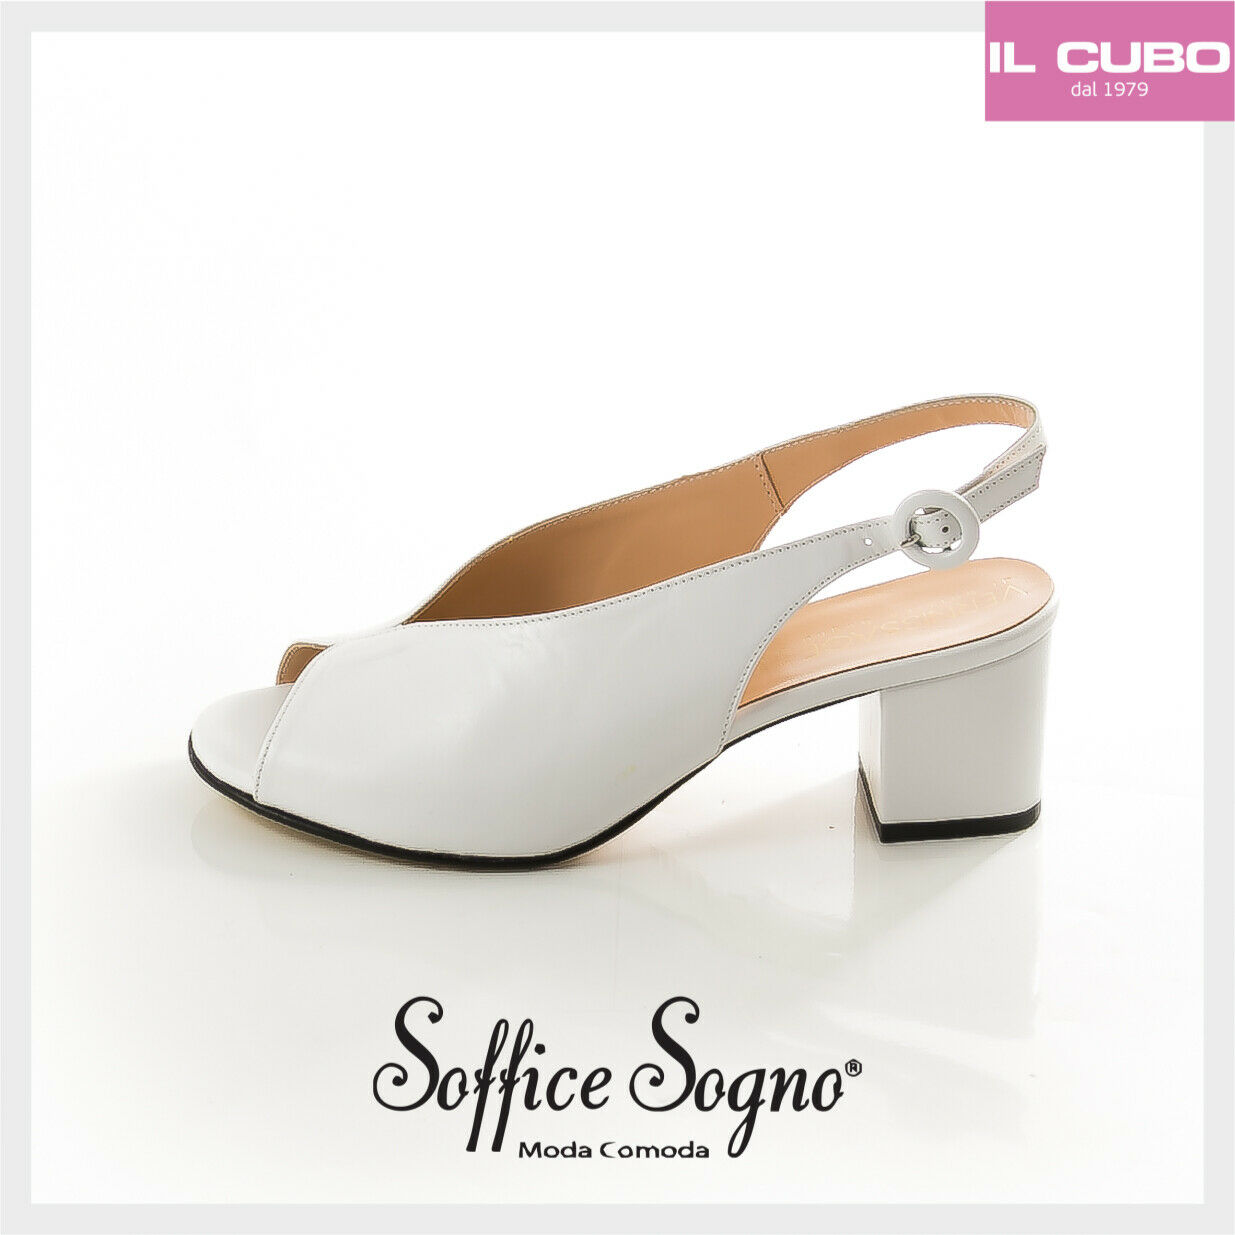 SANDALO DONNA SOFFICE SOGNO PELLE ColoreeeeeE BIANCO TACCO H 6 CM MADE IN ITALY